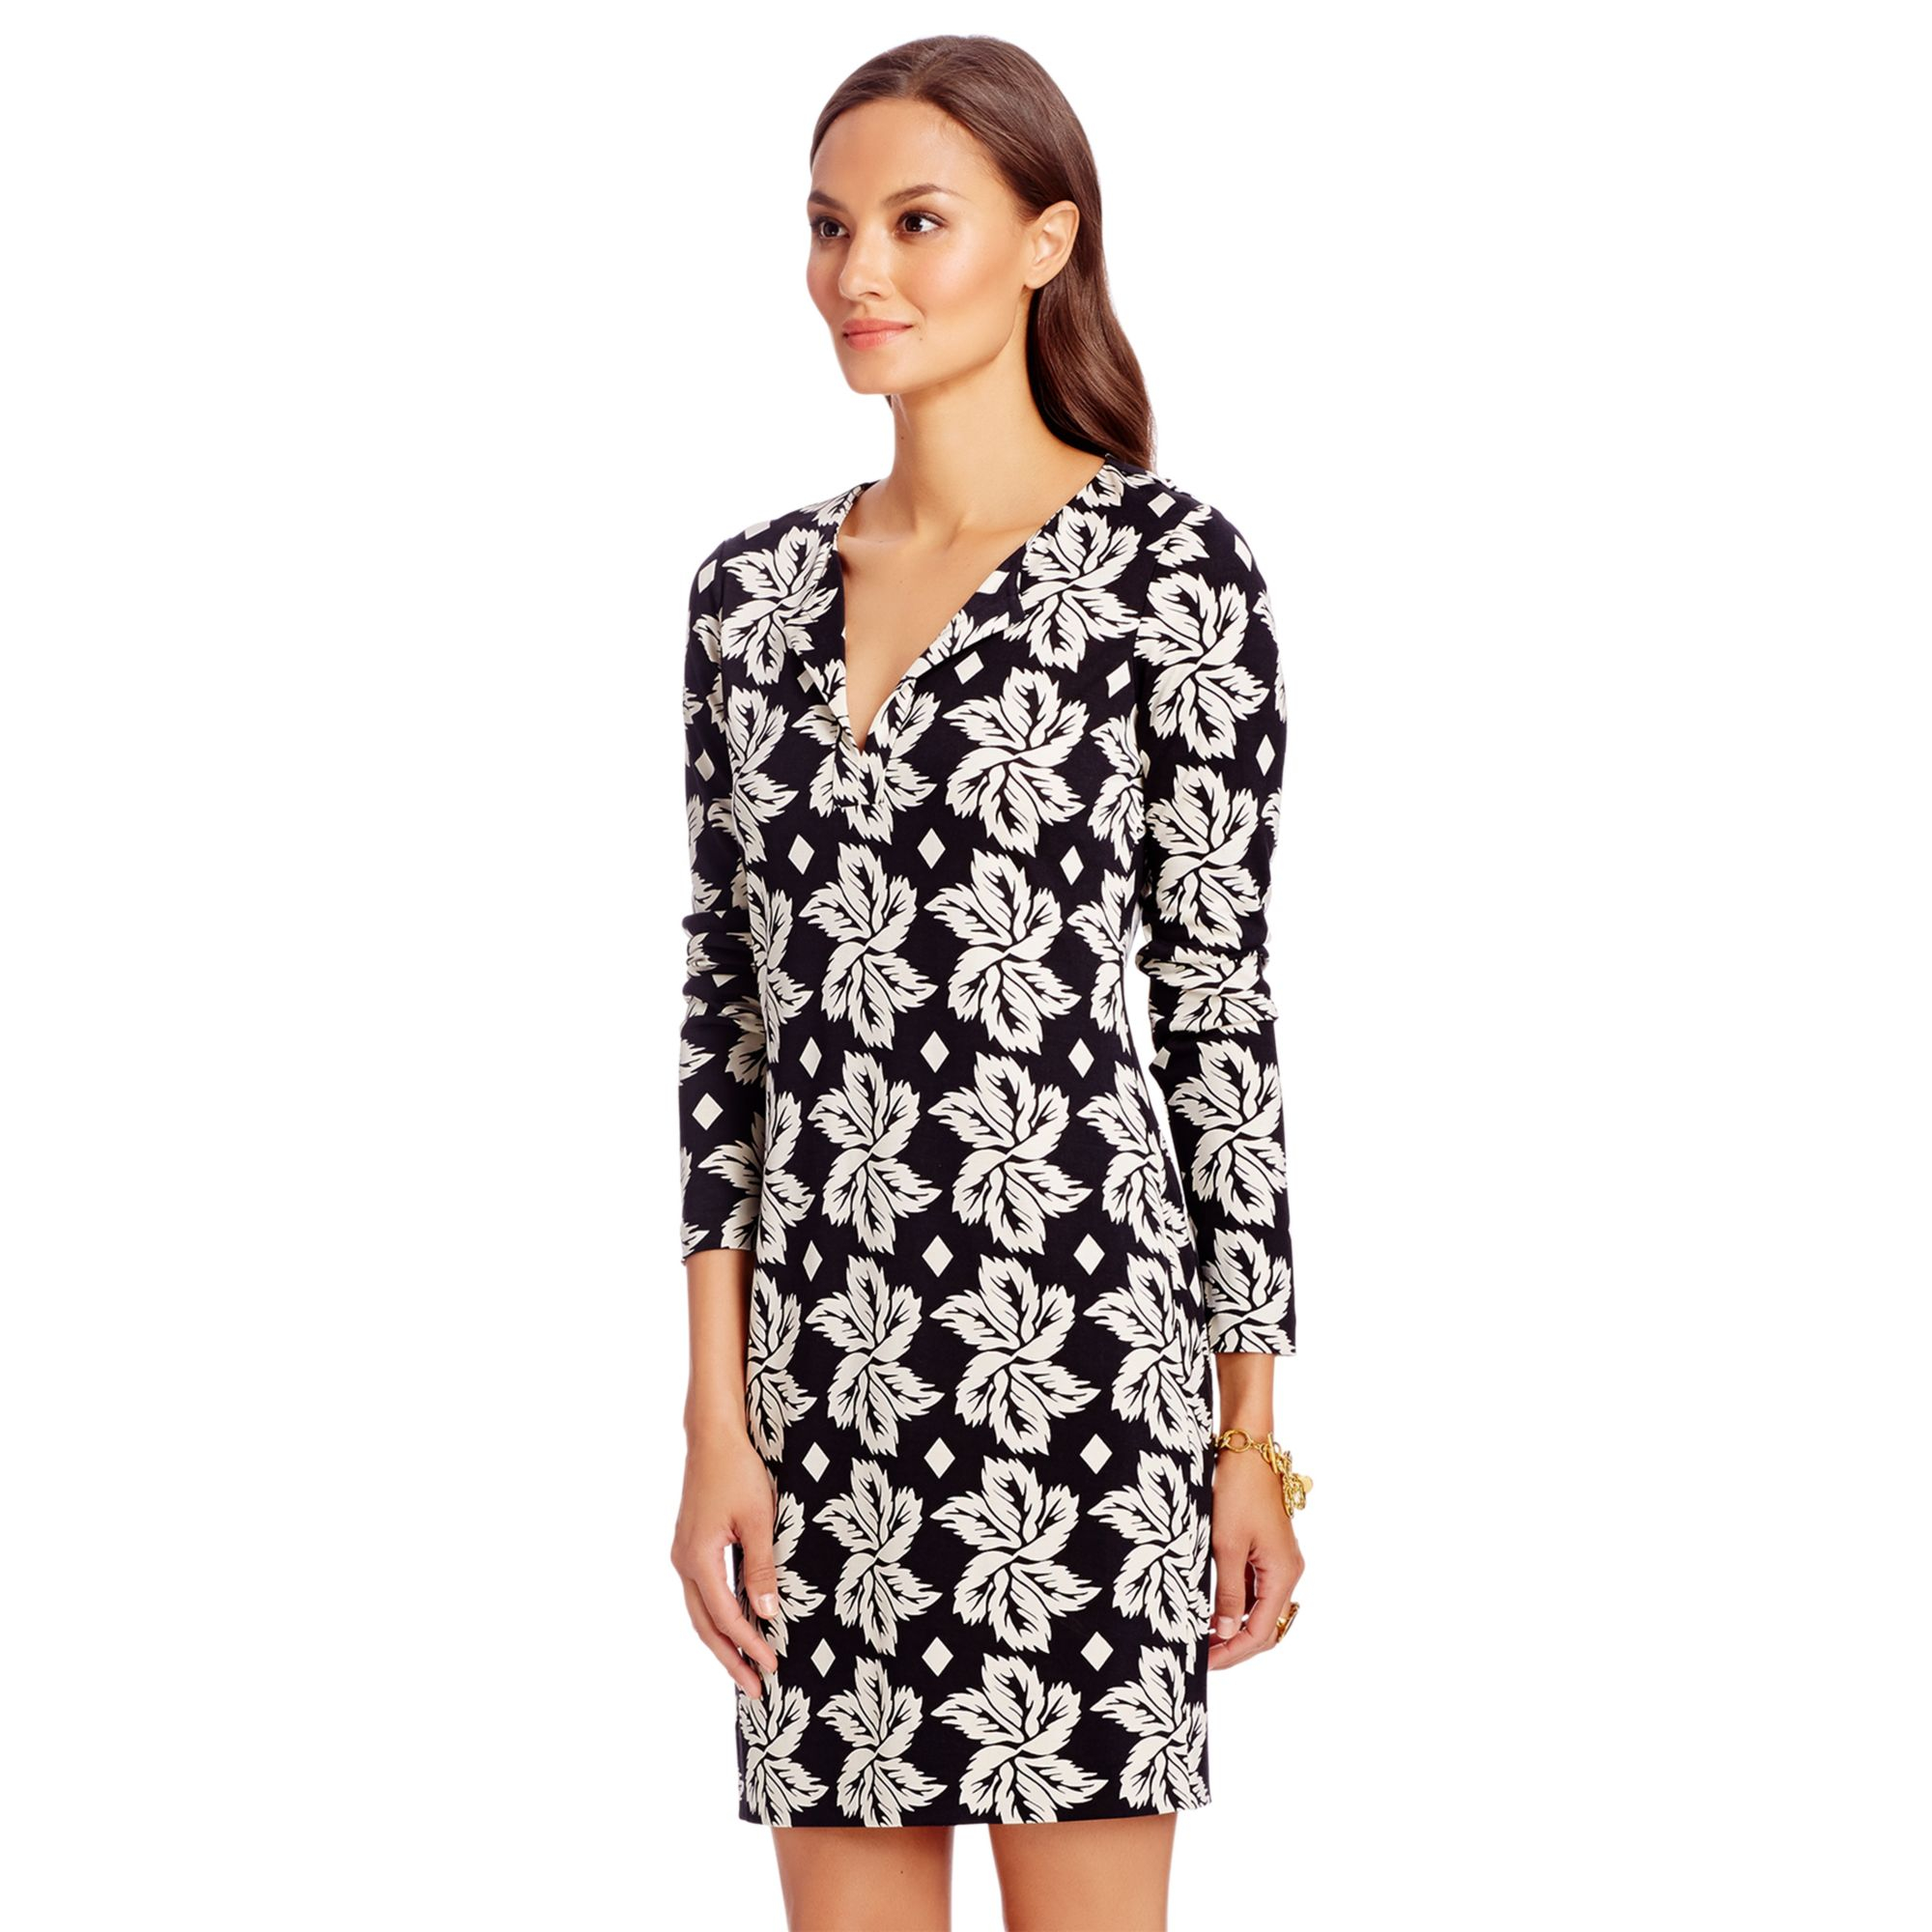 Cheap Buy Cheap Discount Sale long-sleeved patterned smock dress - Green Diane Von Fürstenberg With Credit Card Sale Online S2NmZ79JE